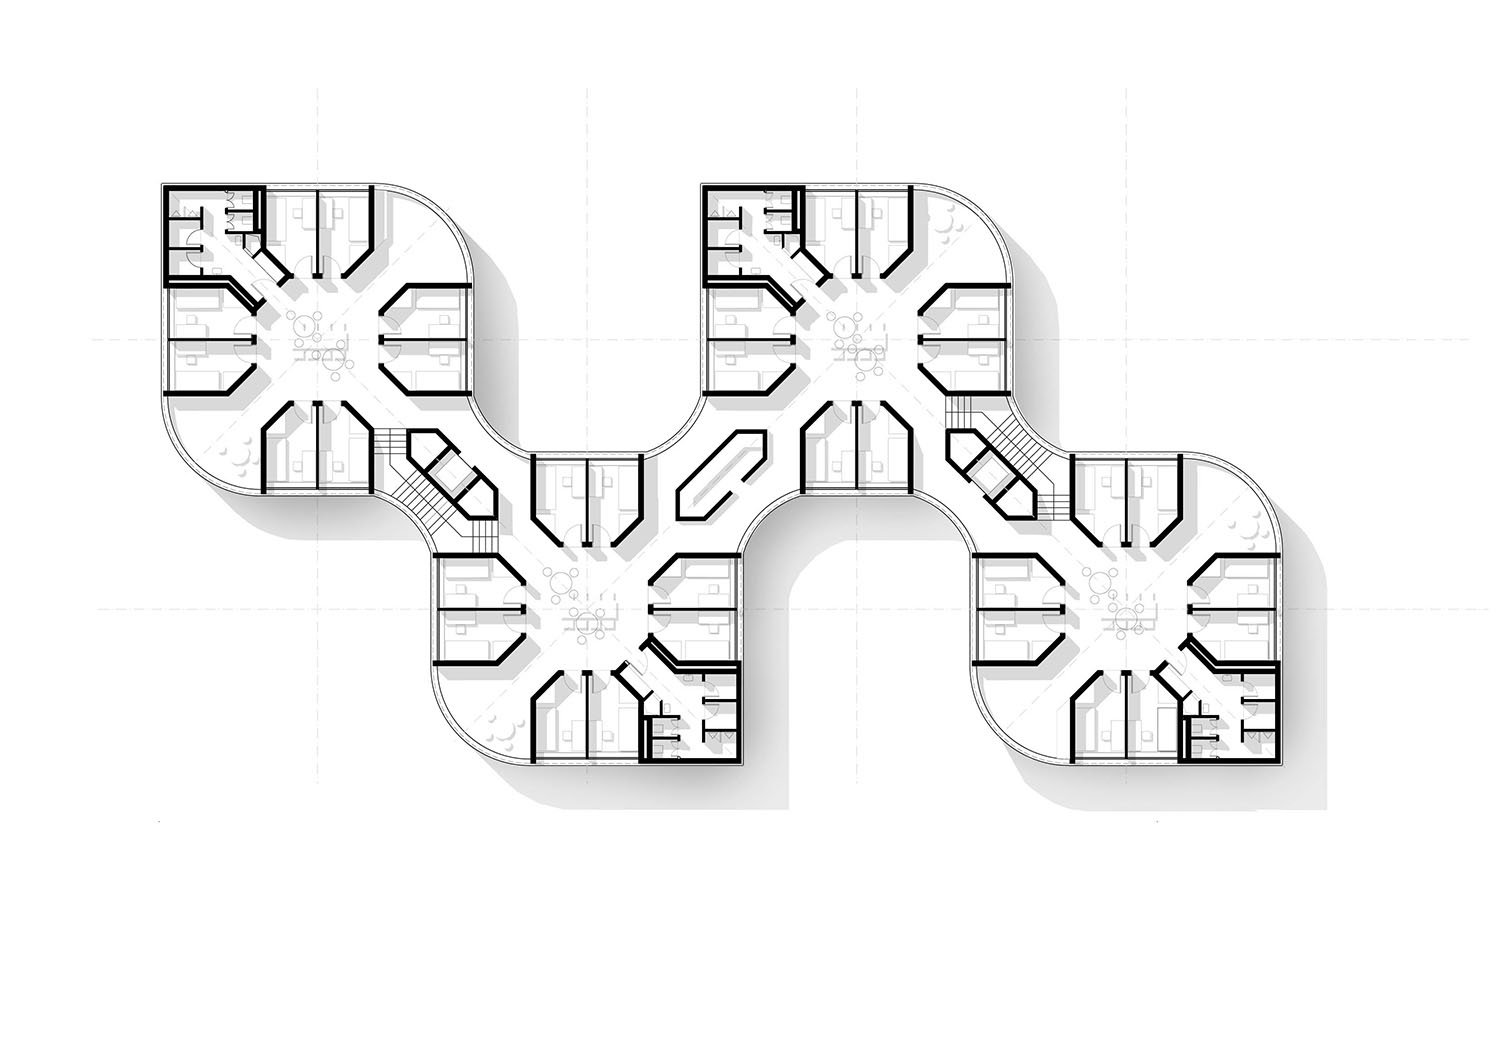 Typical floorplan of two combined clusters, forming one housing block.  gmp von Gerkan, Marg and Partners Architects}